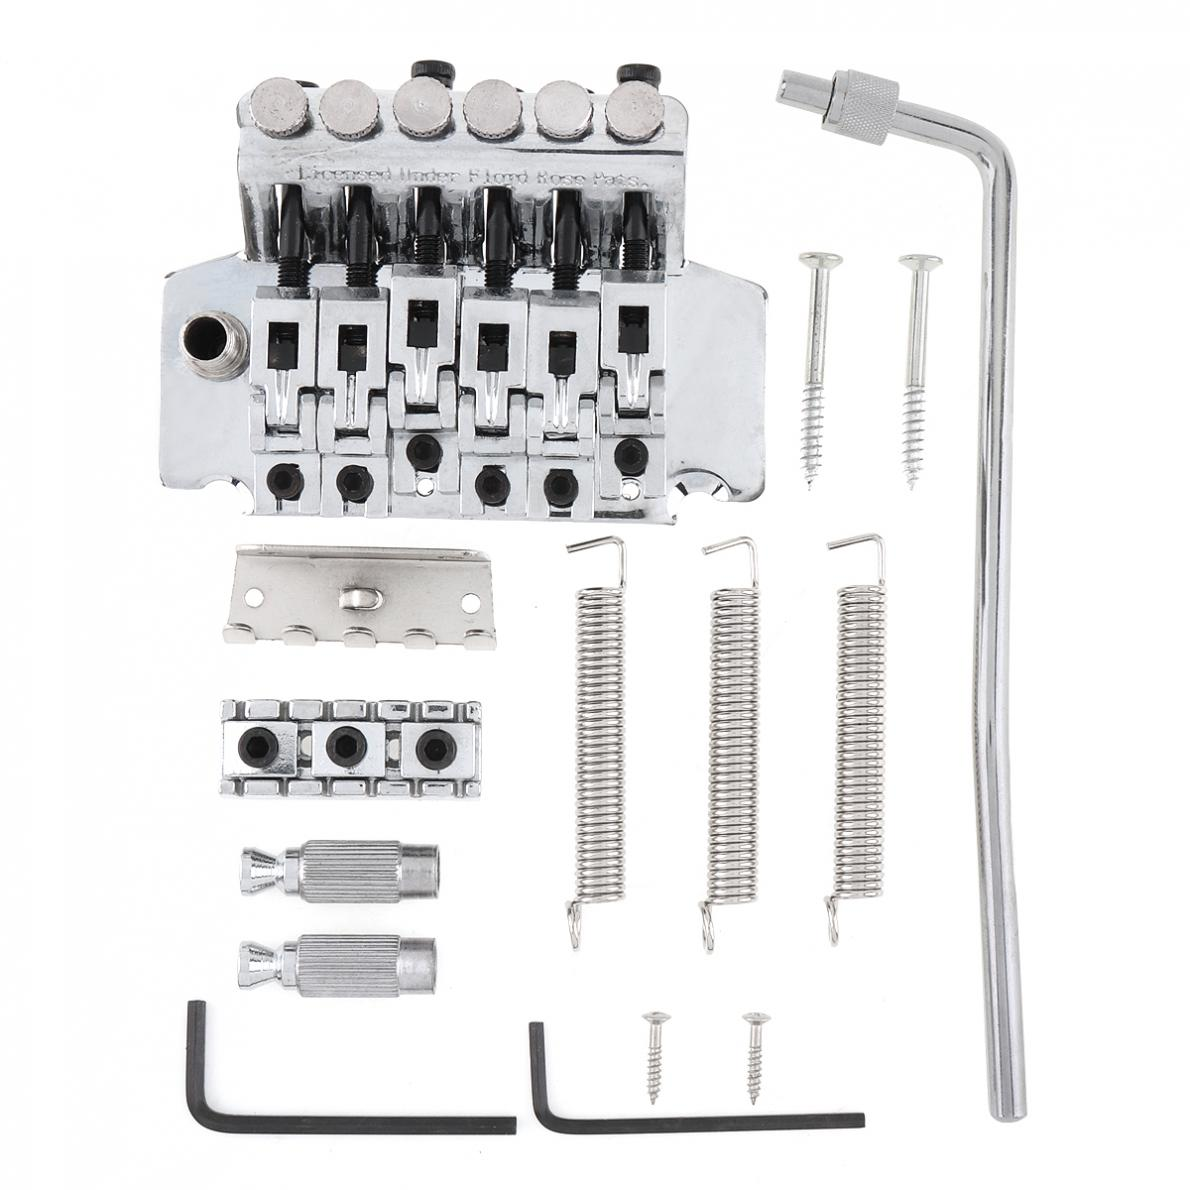 6 String Double Roll Tailpiece Saddle Tremolo Bridge System Silver / Black Optional Guitar Accessories enlarge